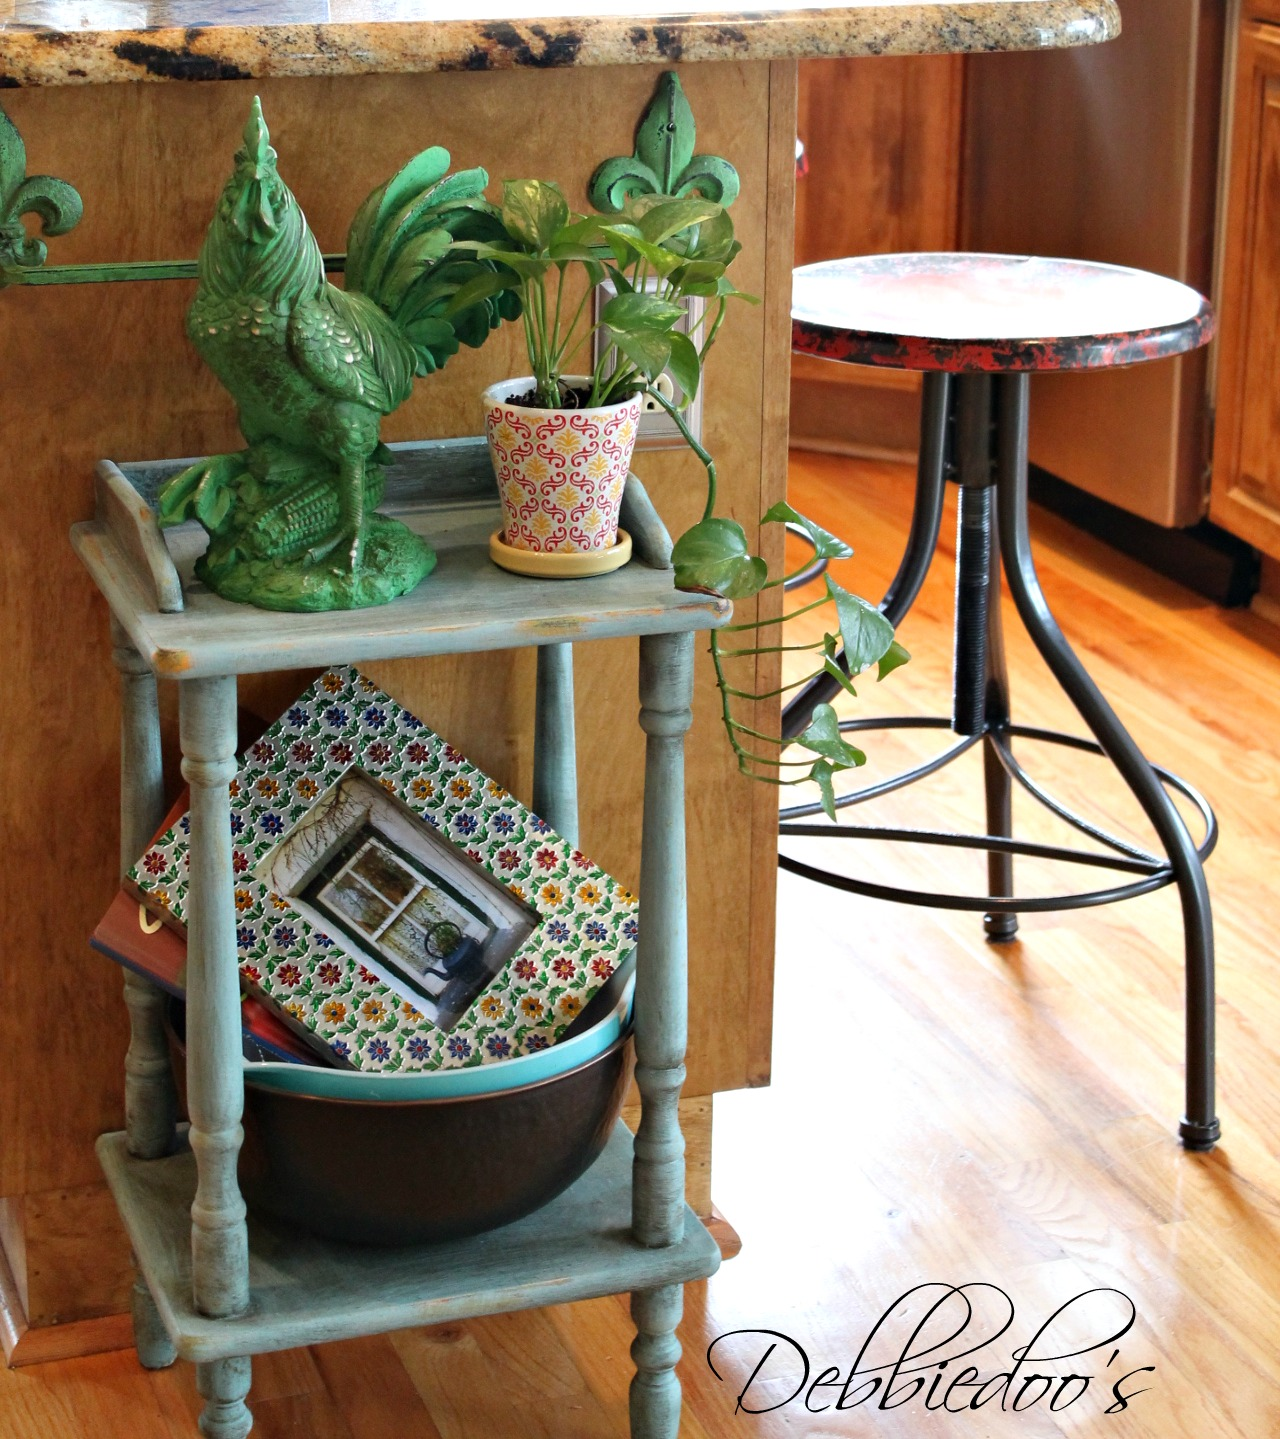 French Kitchen Stools: French Country Kitchen Style Freshened Up